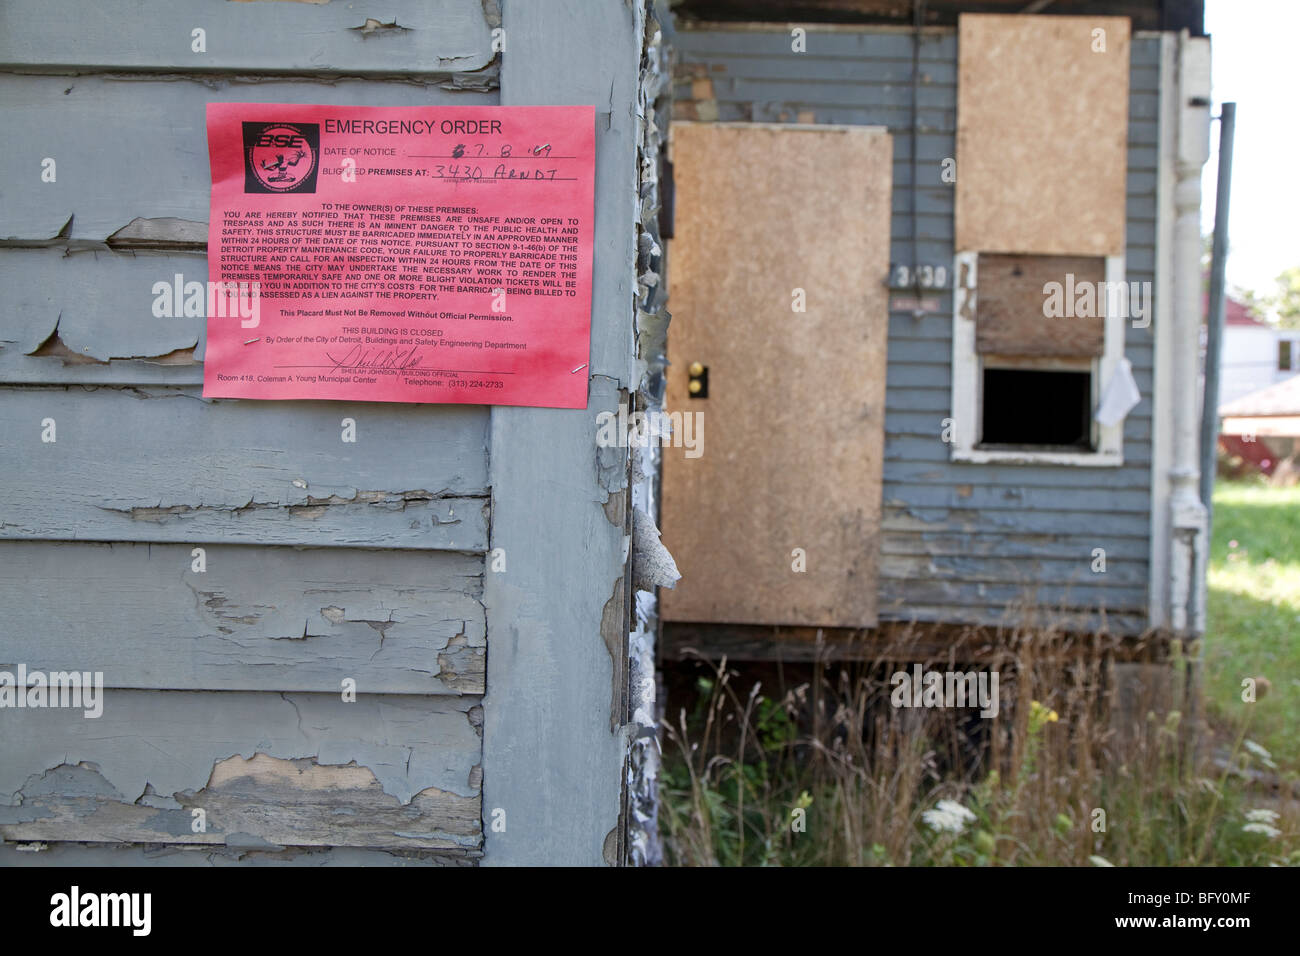 A vacant home on Detroit's east side with an emergency order posted by city inspectors declaring it unsafe. - Stock Image